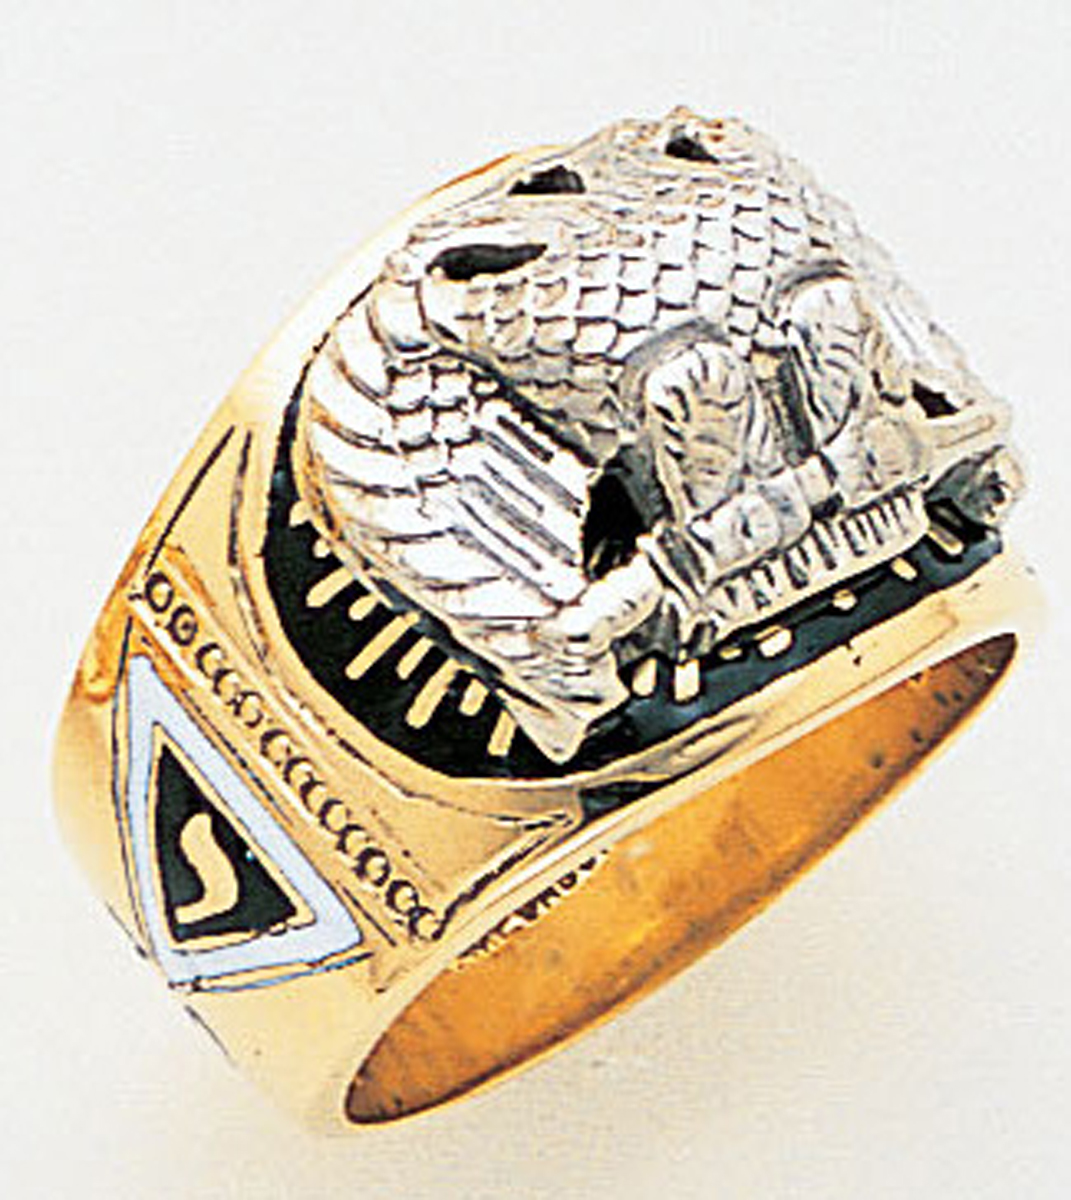 Gold 32 Degree Scottish Rite Ring - 3438 - Solid Back